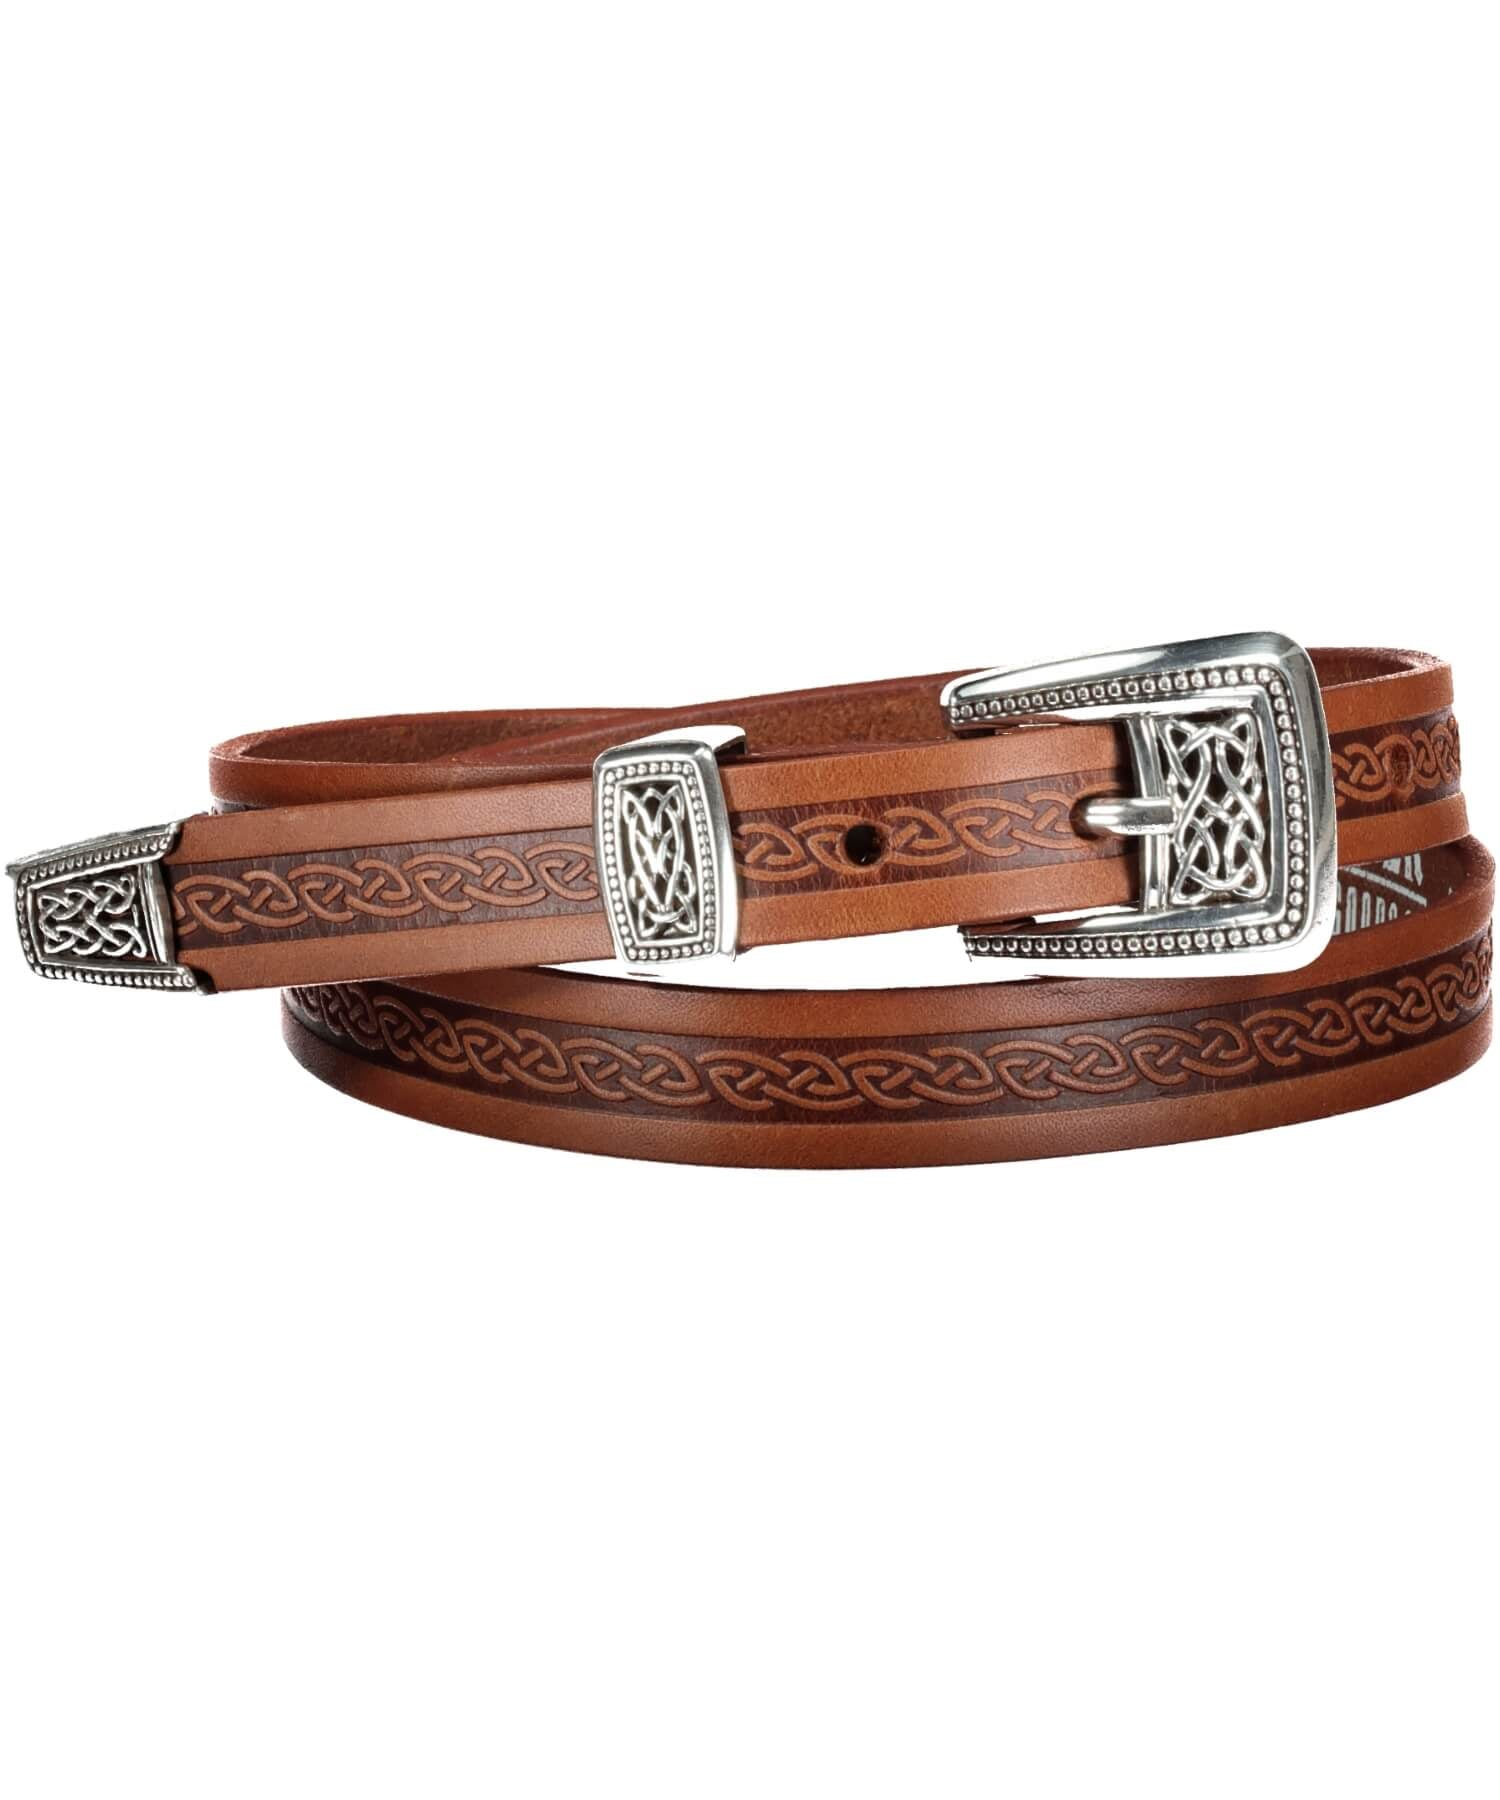 Meabh Belt - Brown - [Lee River] - Leather Belts & Buckles - Irish Gifts